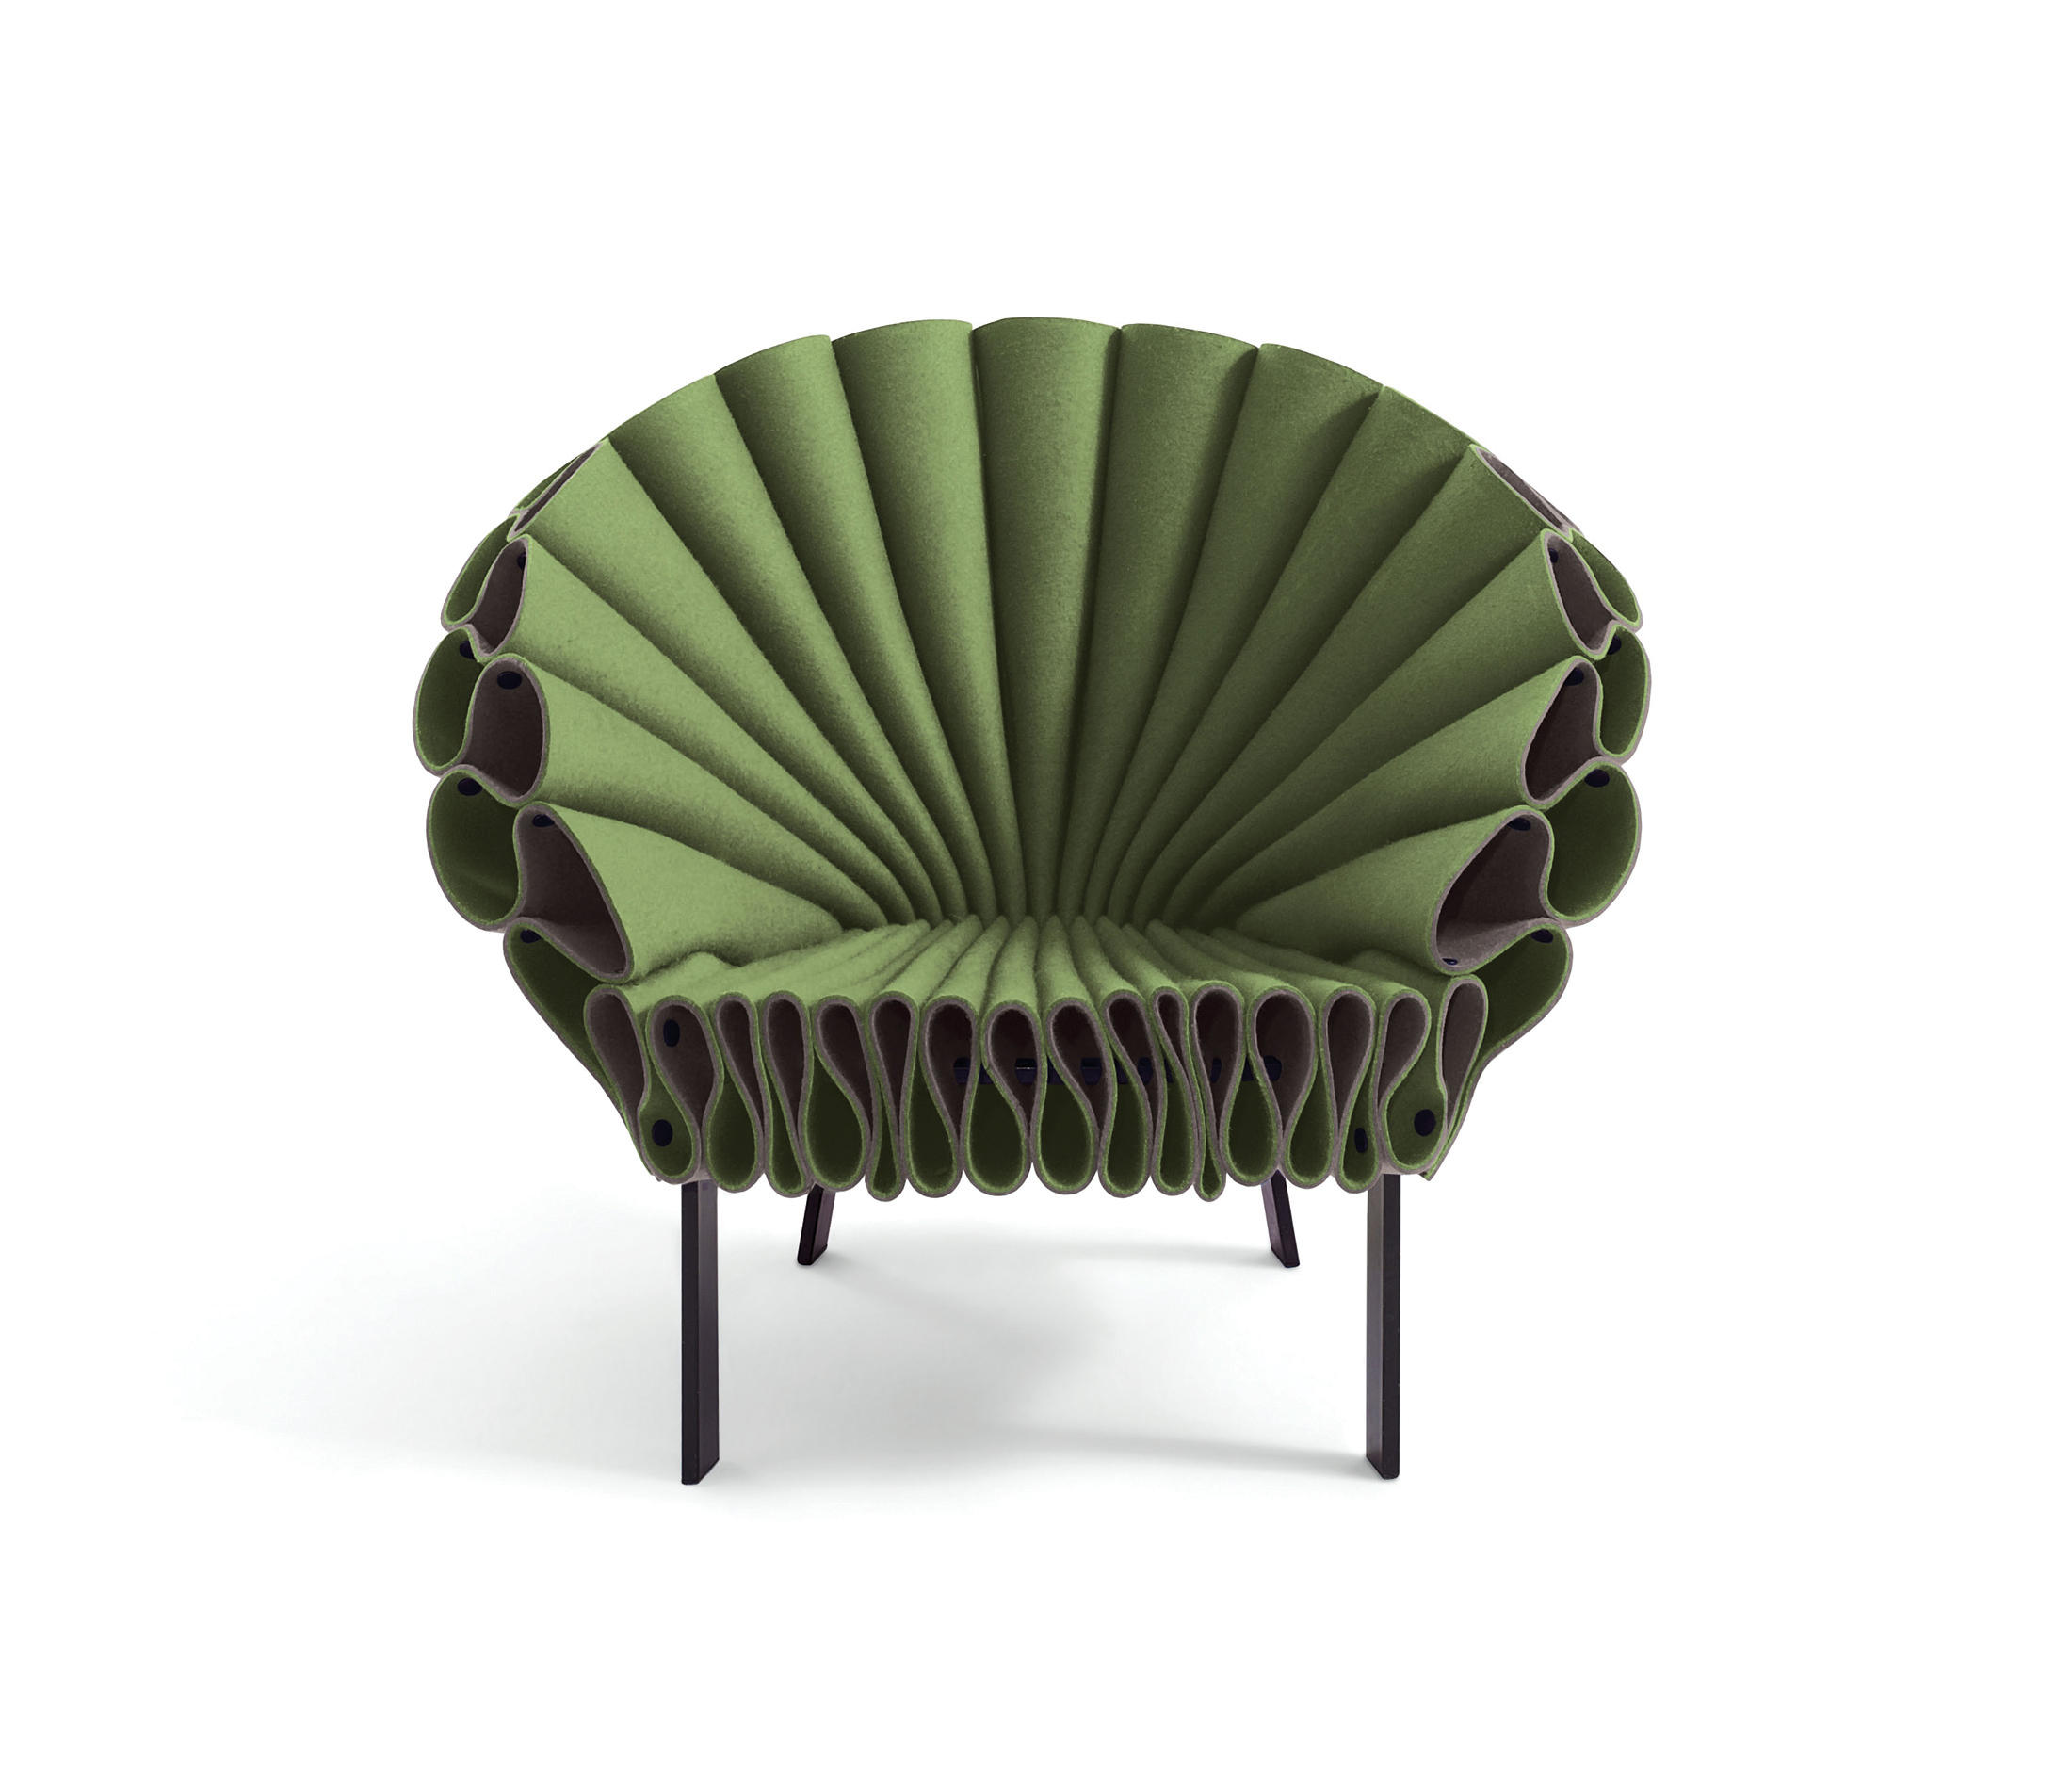 PEACOCK Lounge chairs from Cappellini